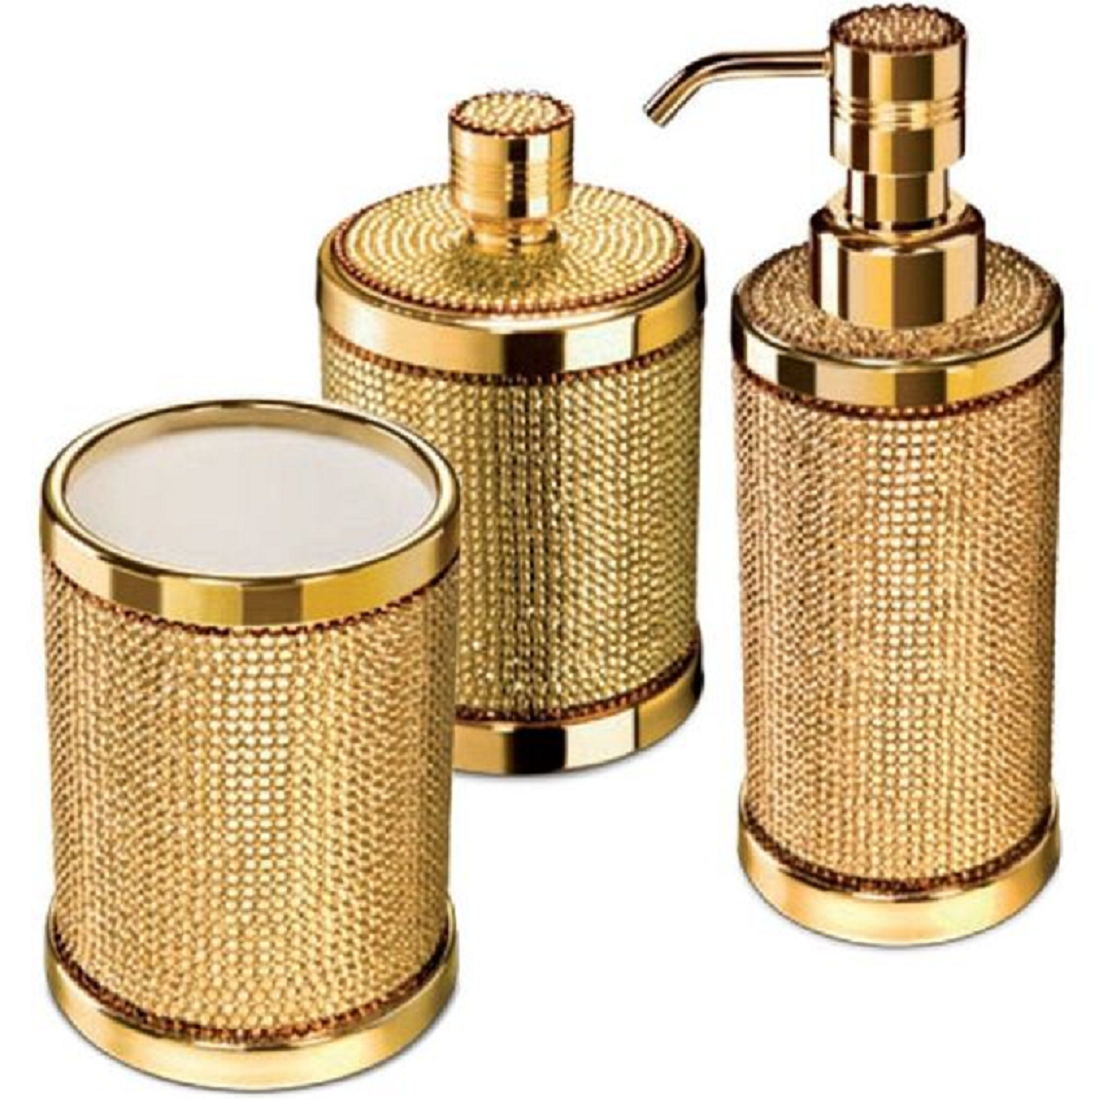 Bling for your bathroom Bling Bathroom Accessories Set With Swarovski - 3 Piece Gold